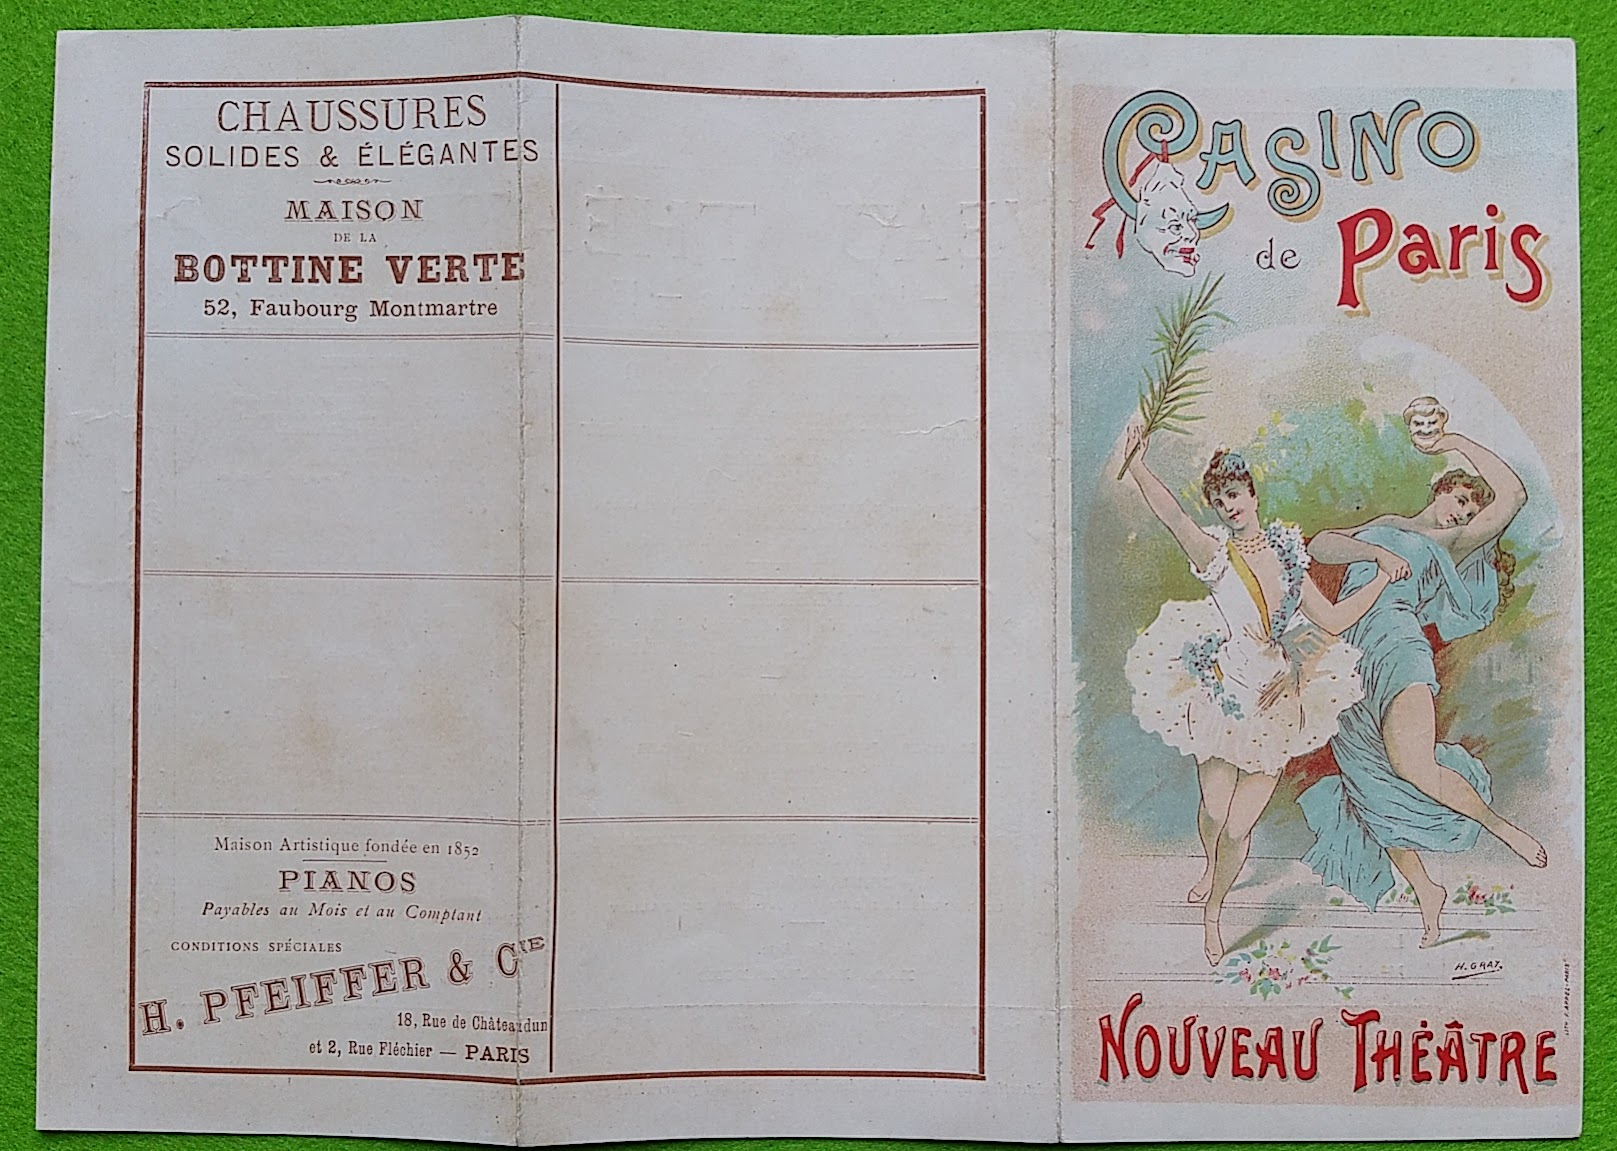 Revue-Programm aus Paris, 1895, Casino de Paris